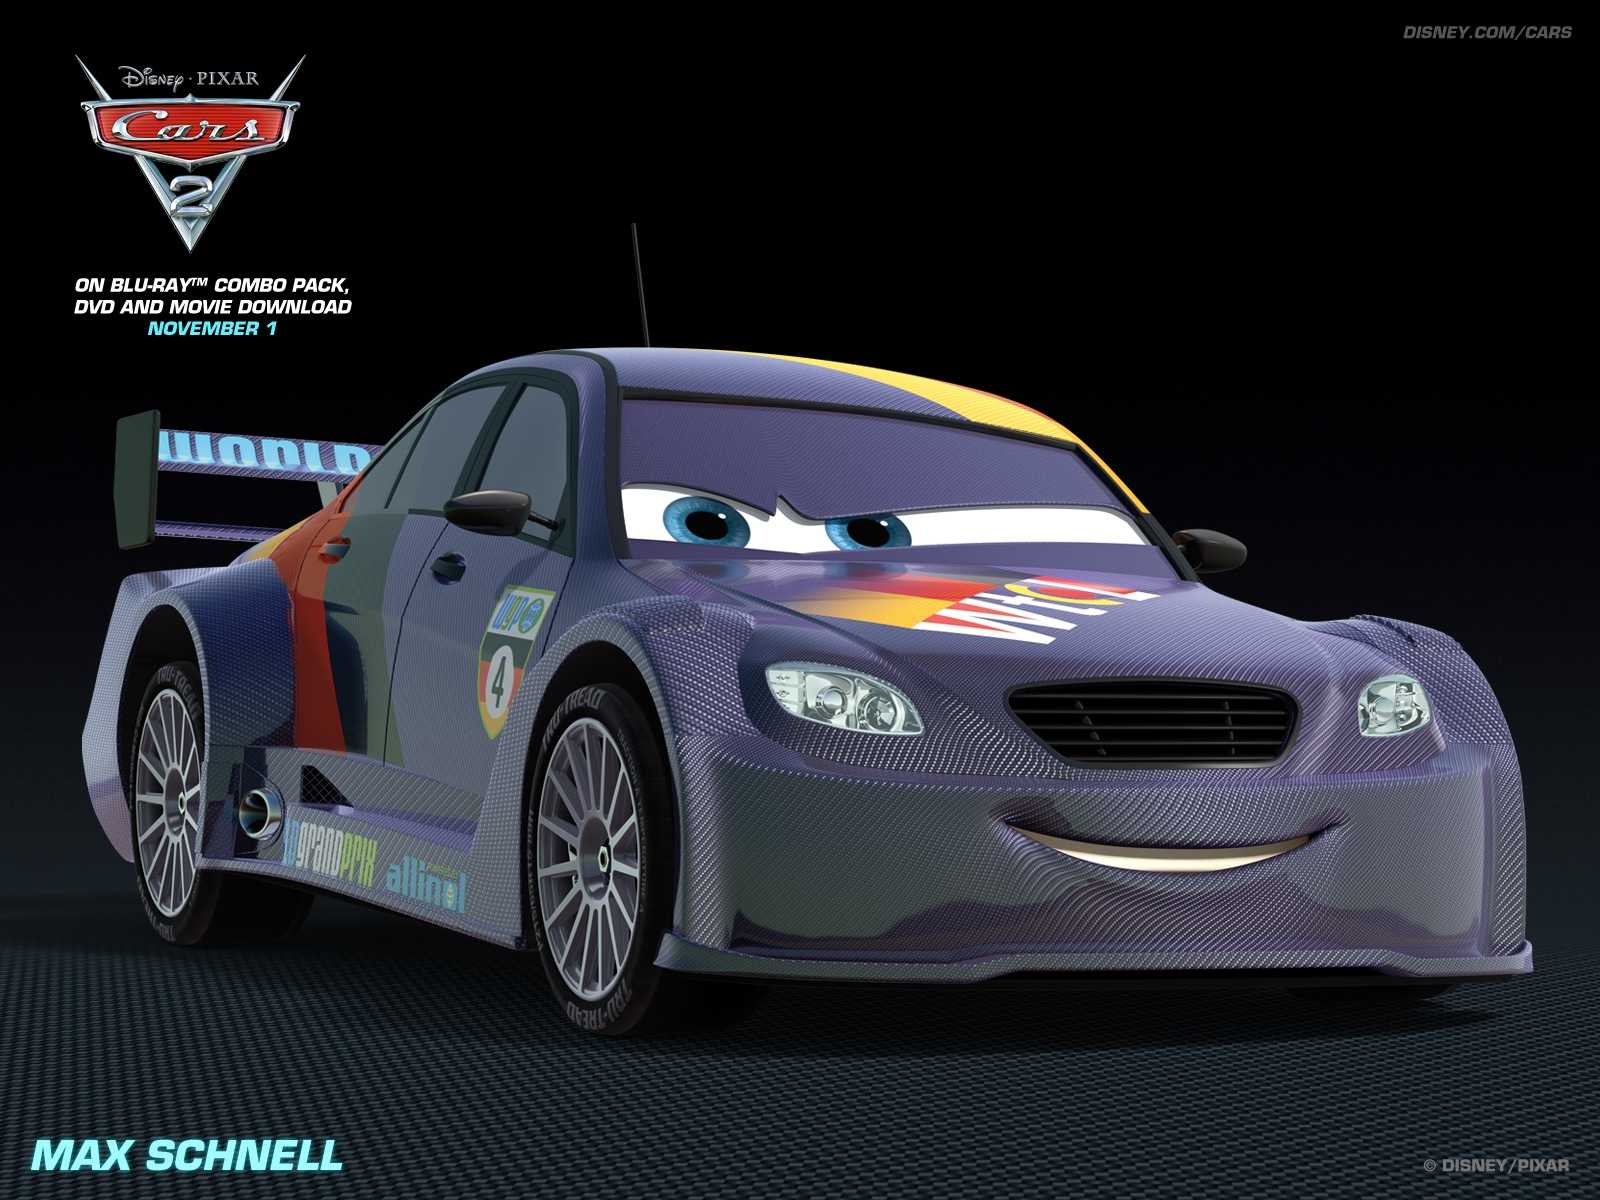 Disney Cars Wallpapers Free Download: Max Schnell Disney Pixar Cars 2 Free Hd Wallpaper 1600 1200